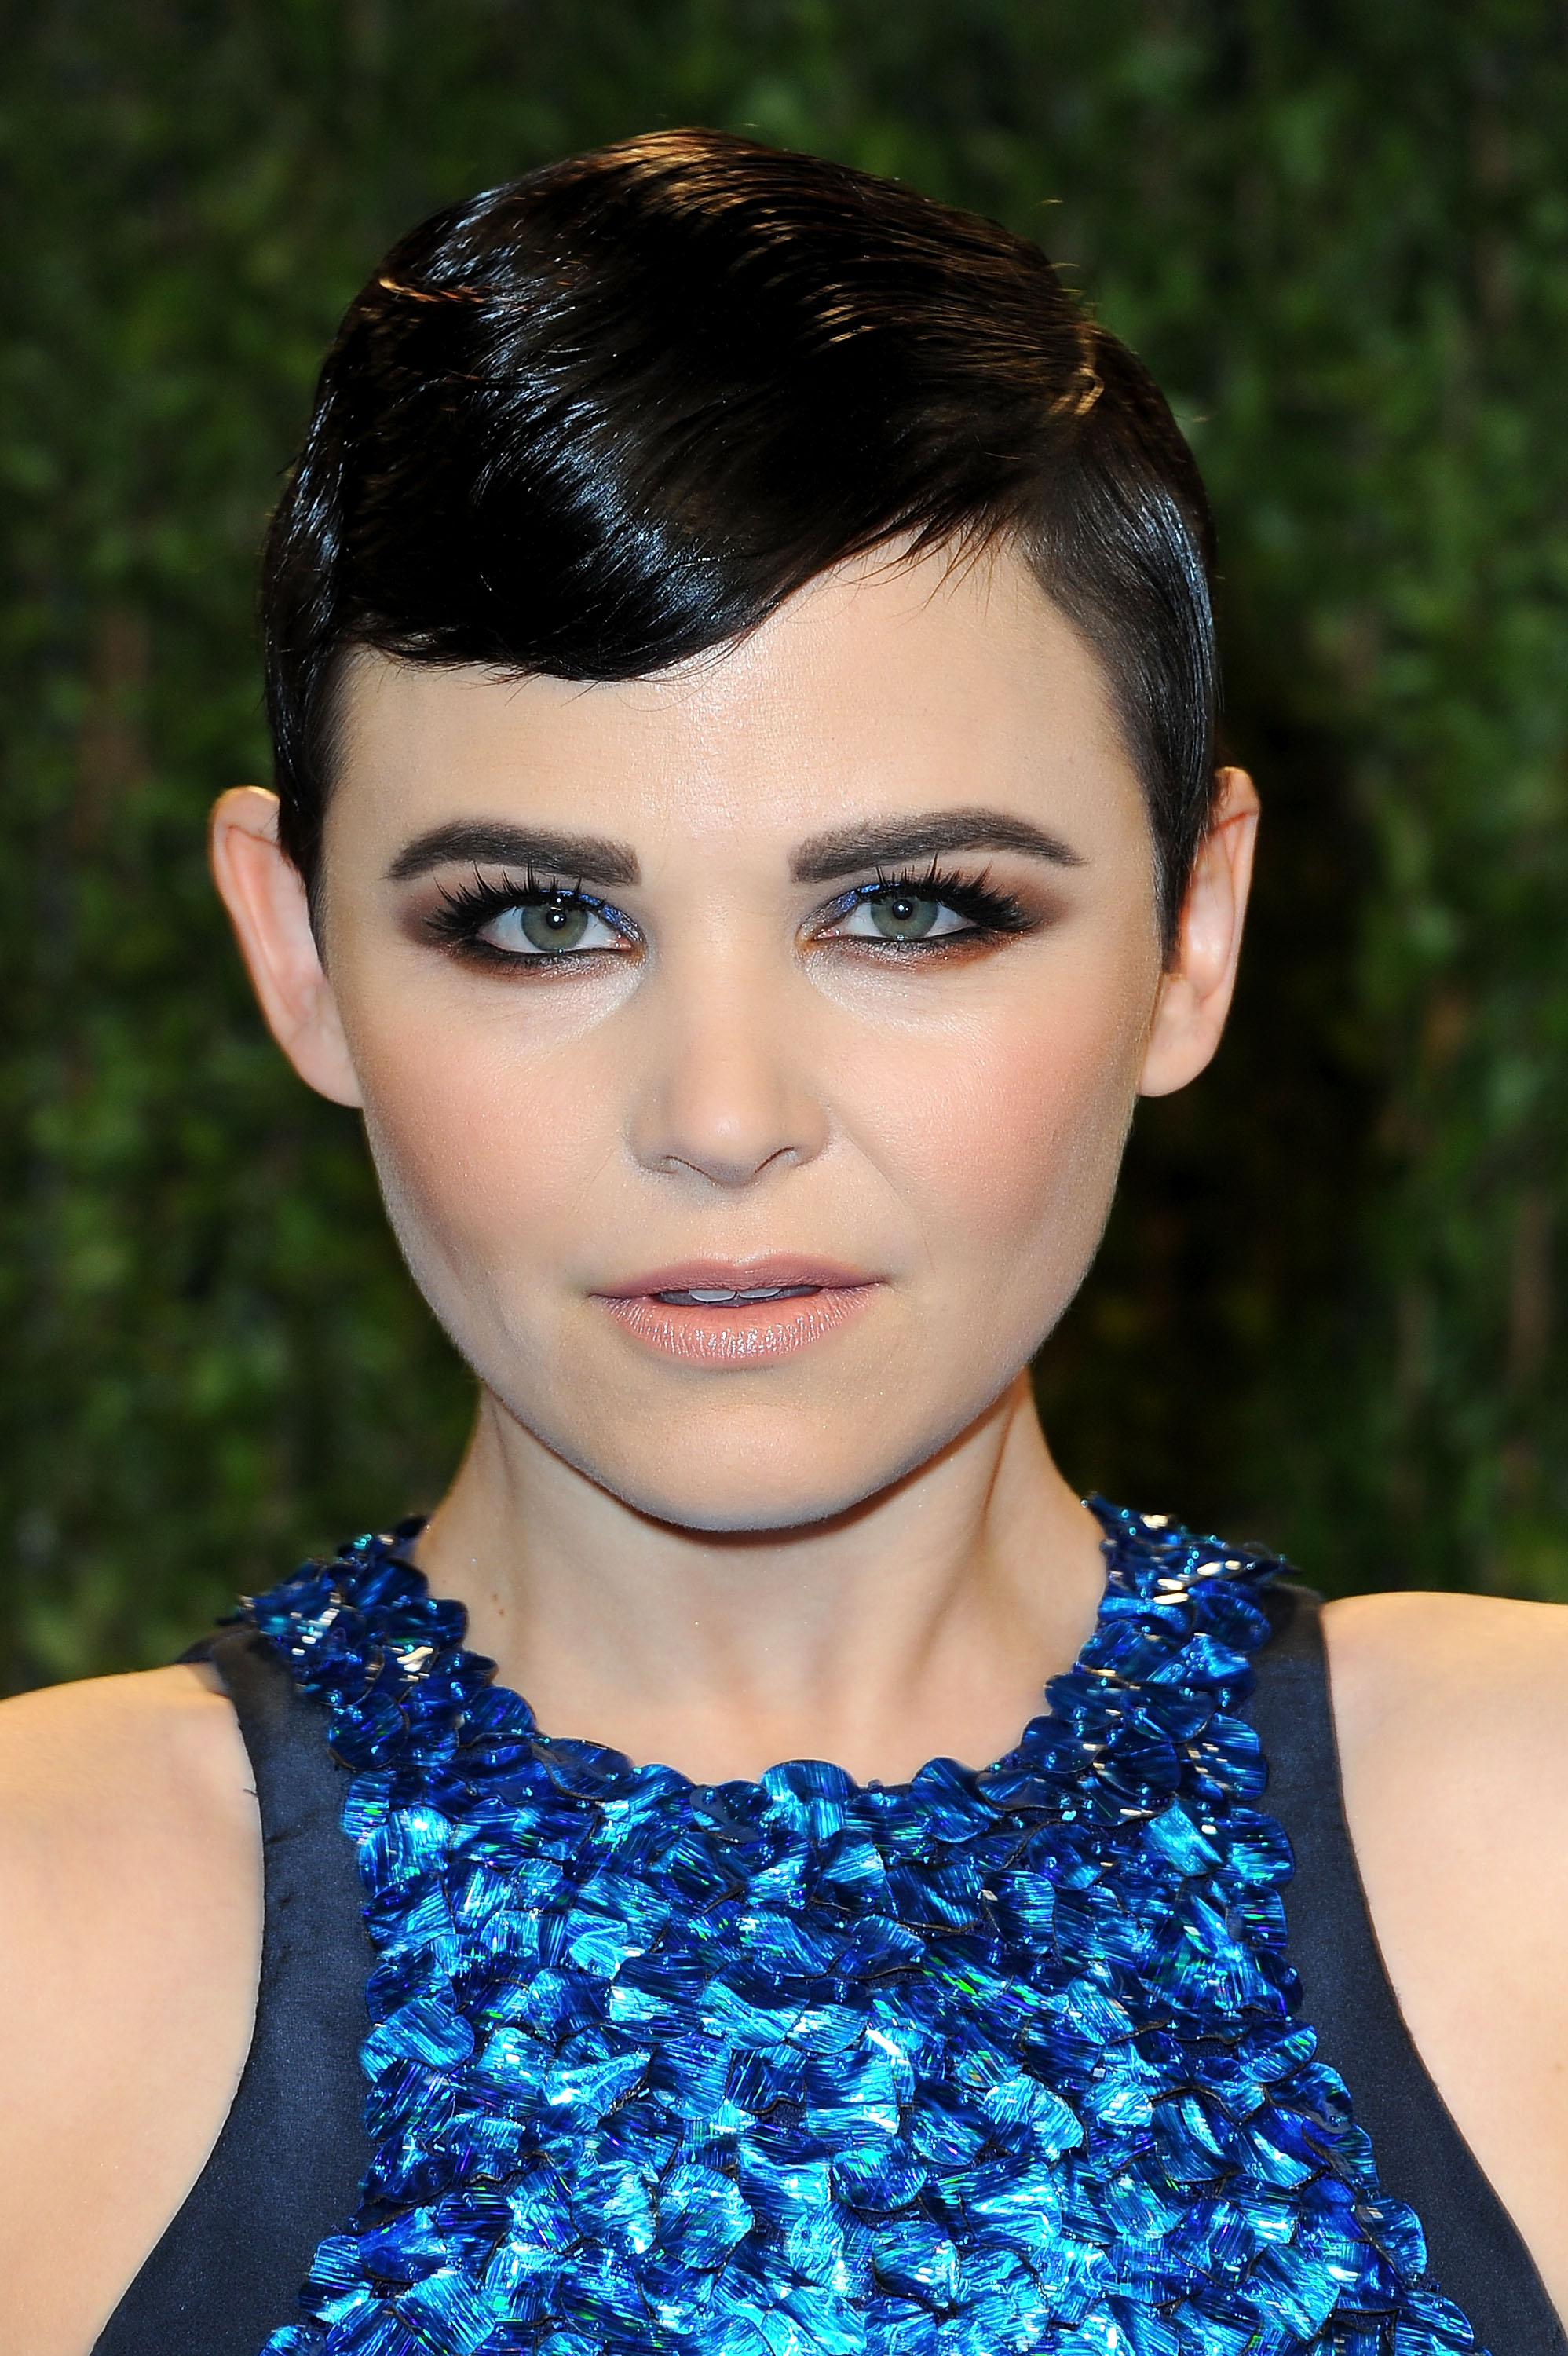 THE OSCARS: Ginnifer Goodwin at Vanity Fair in Finger Waves